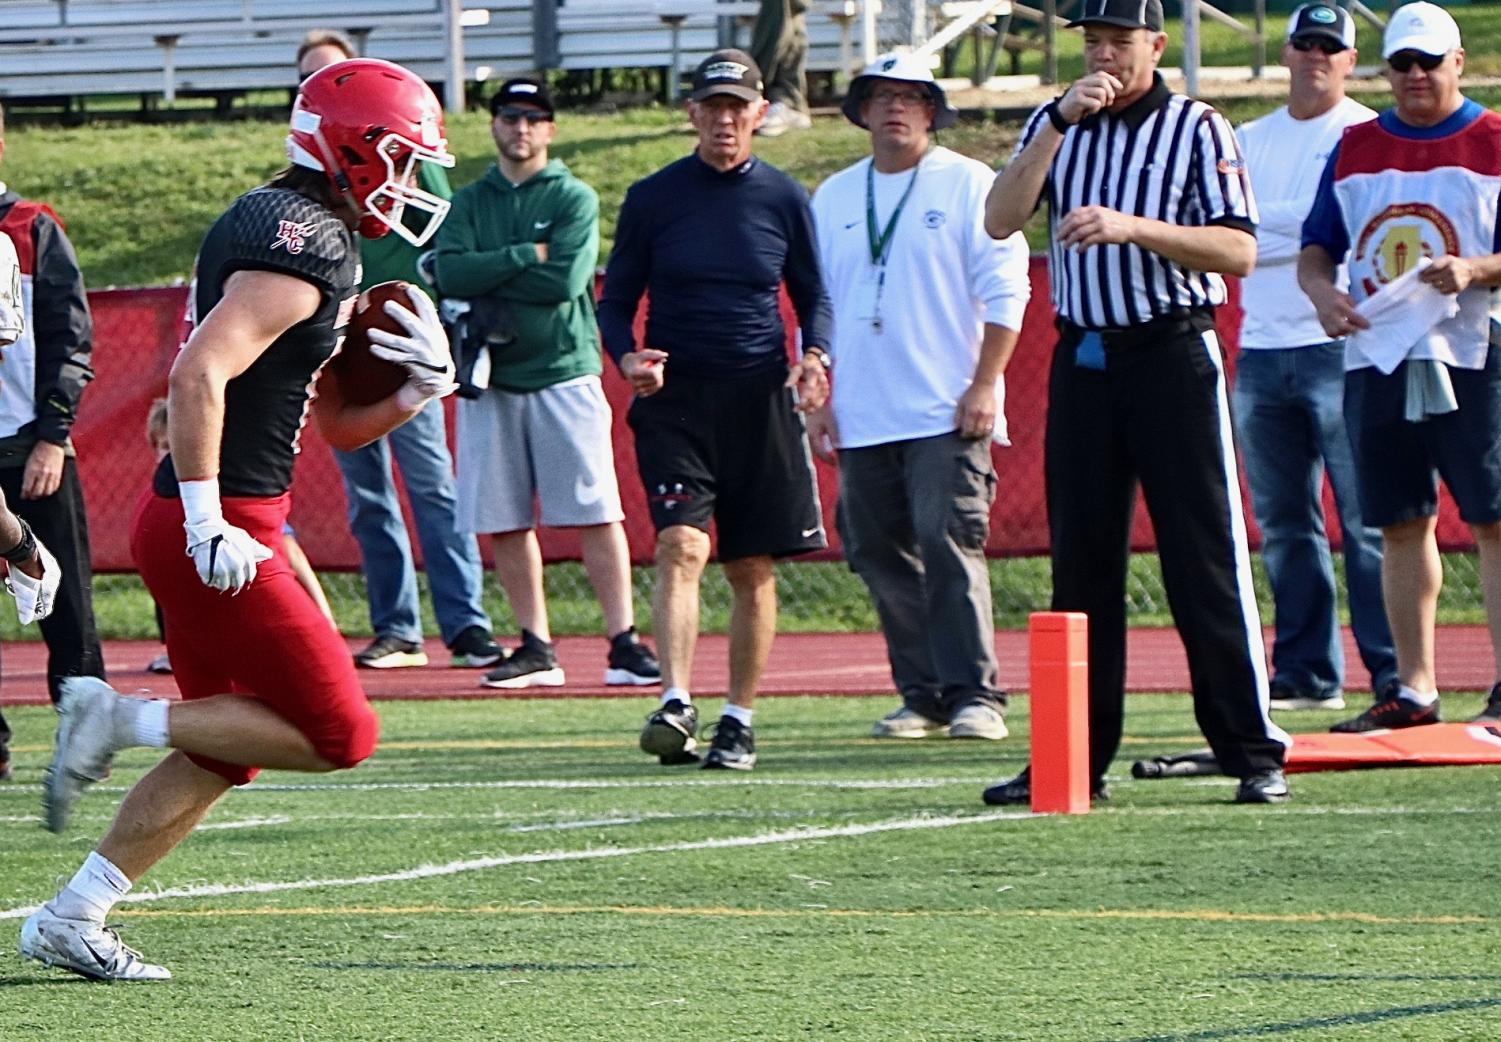 Nick Franko, junior, scored the first touchdown for the Red Devils making the score 21-7 in the fourth quarter.